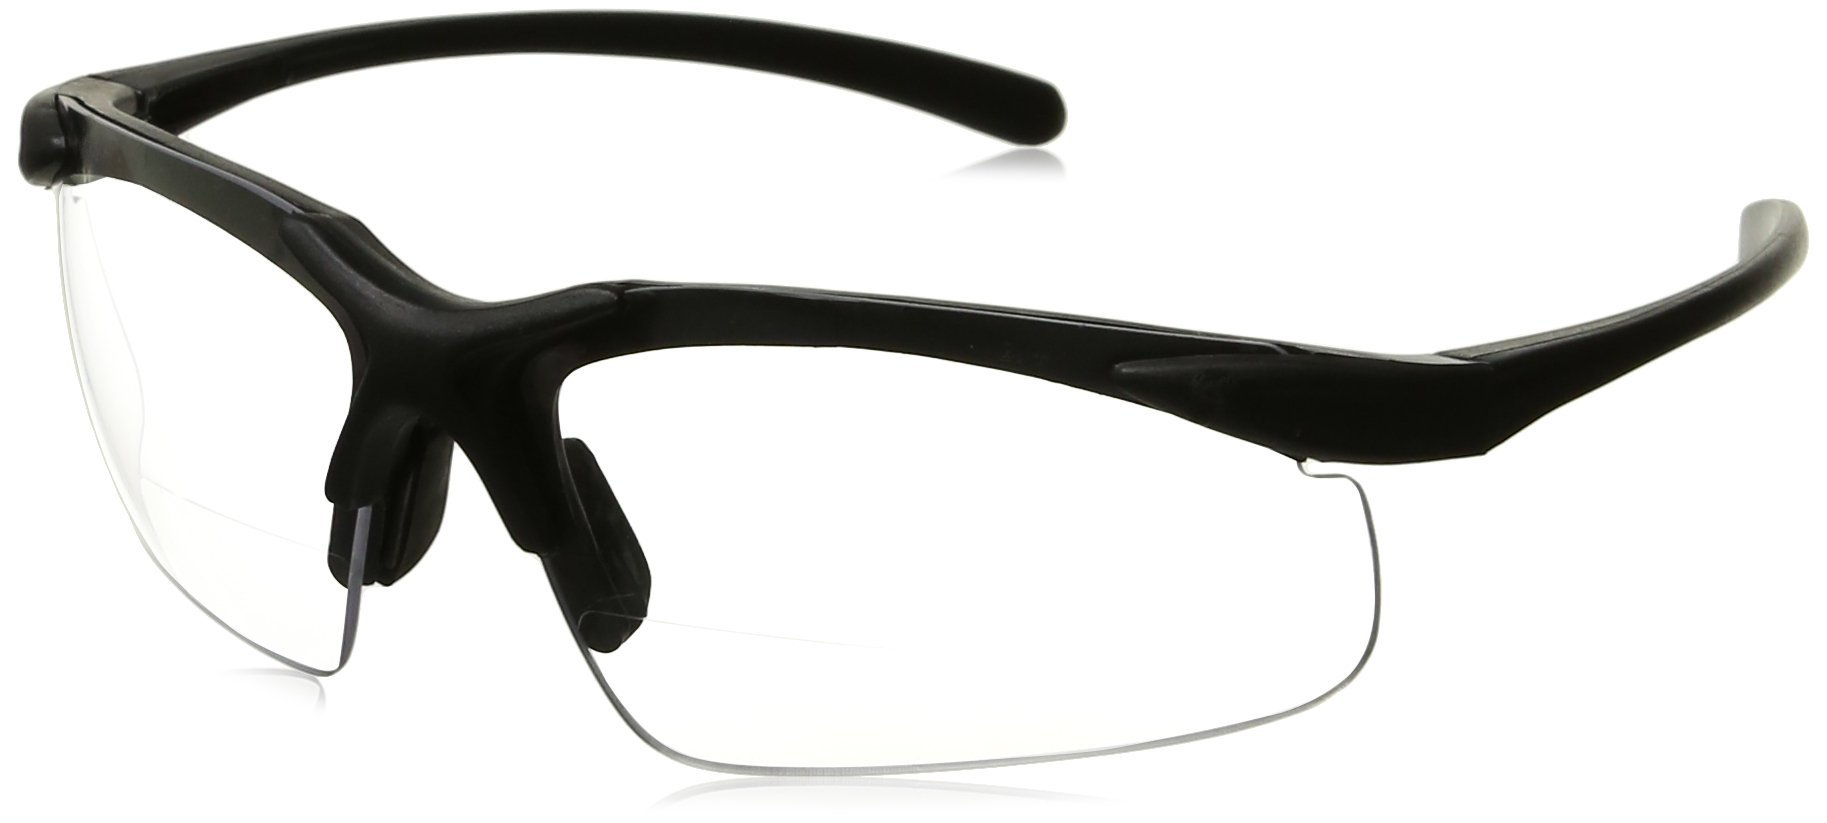 Apex clear bifocal airsoft safety glasses 1.5 power